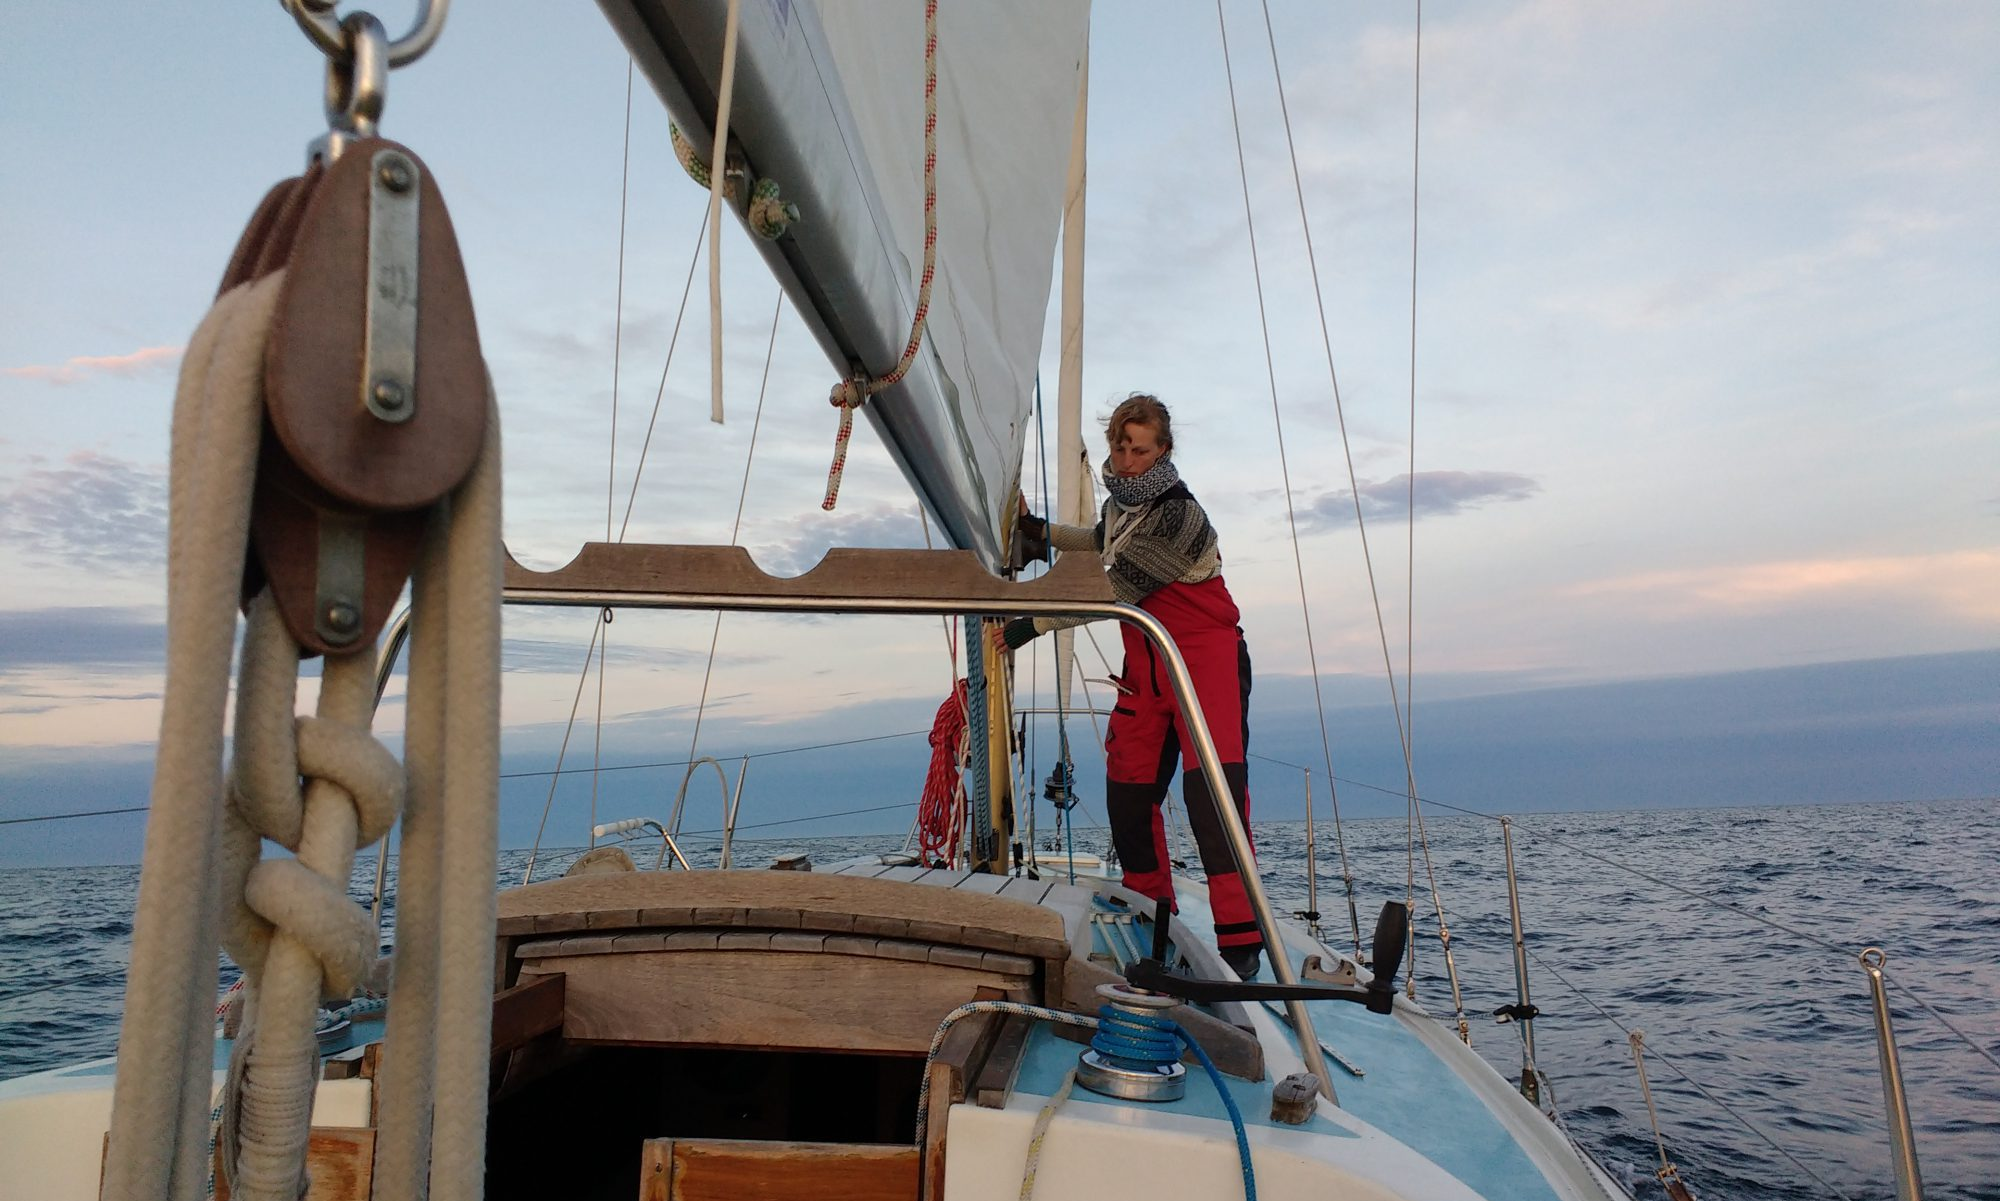 SAILING ALONE ON S/Y CAPRICE